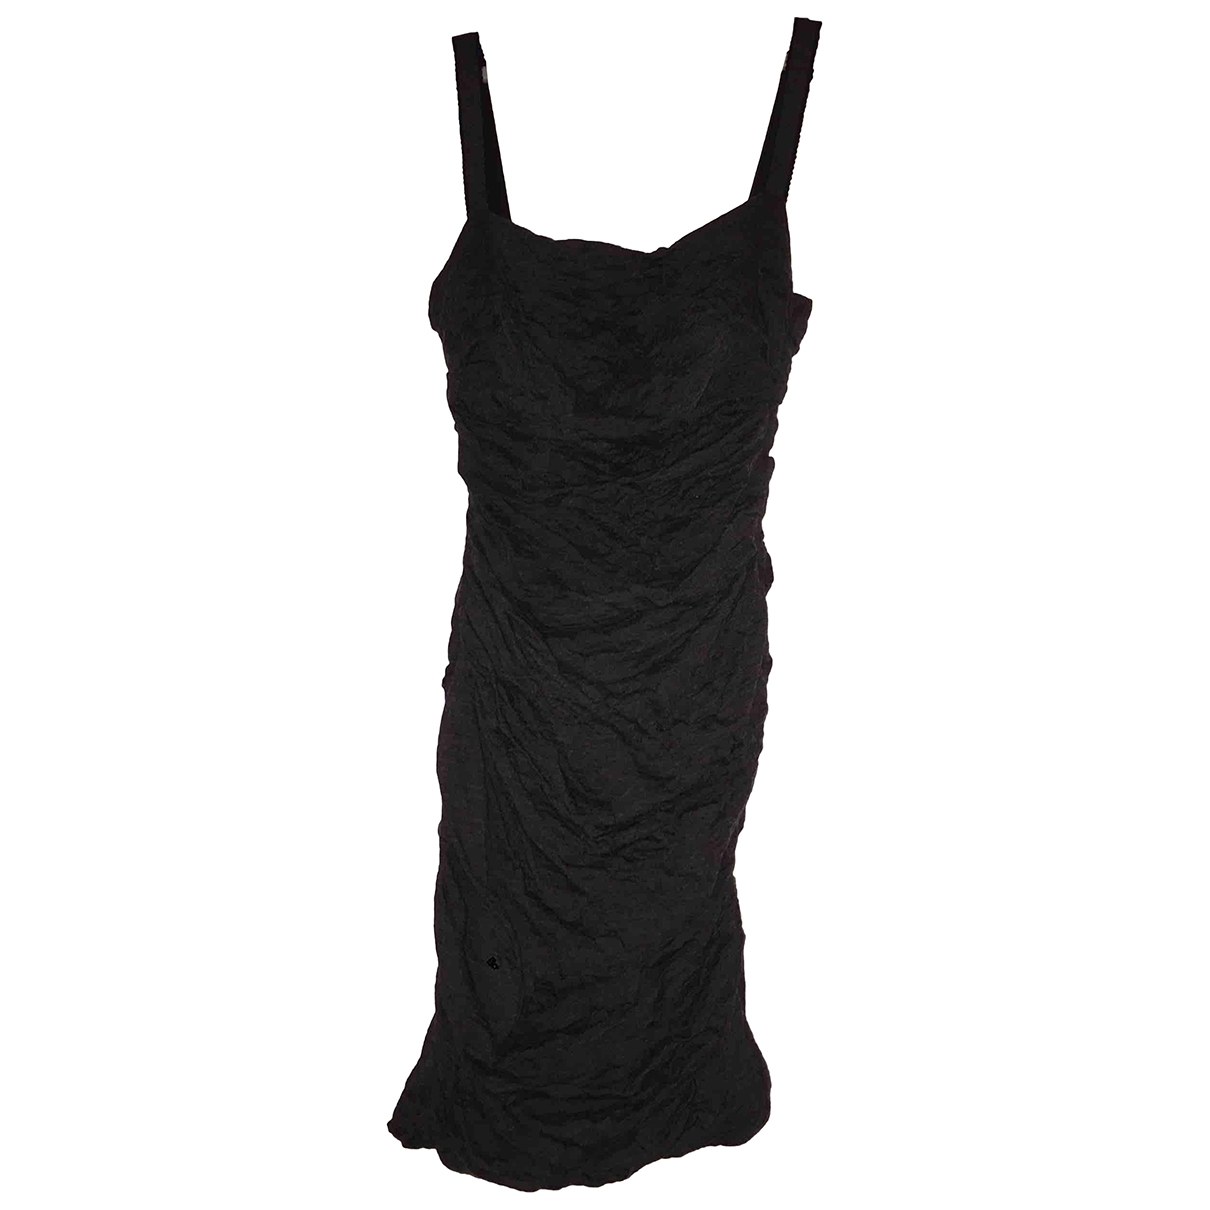 Dolce & Gabbana \N Anthracite Wool dress for Women 42 IT